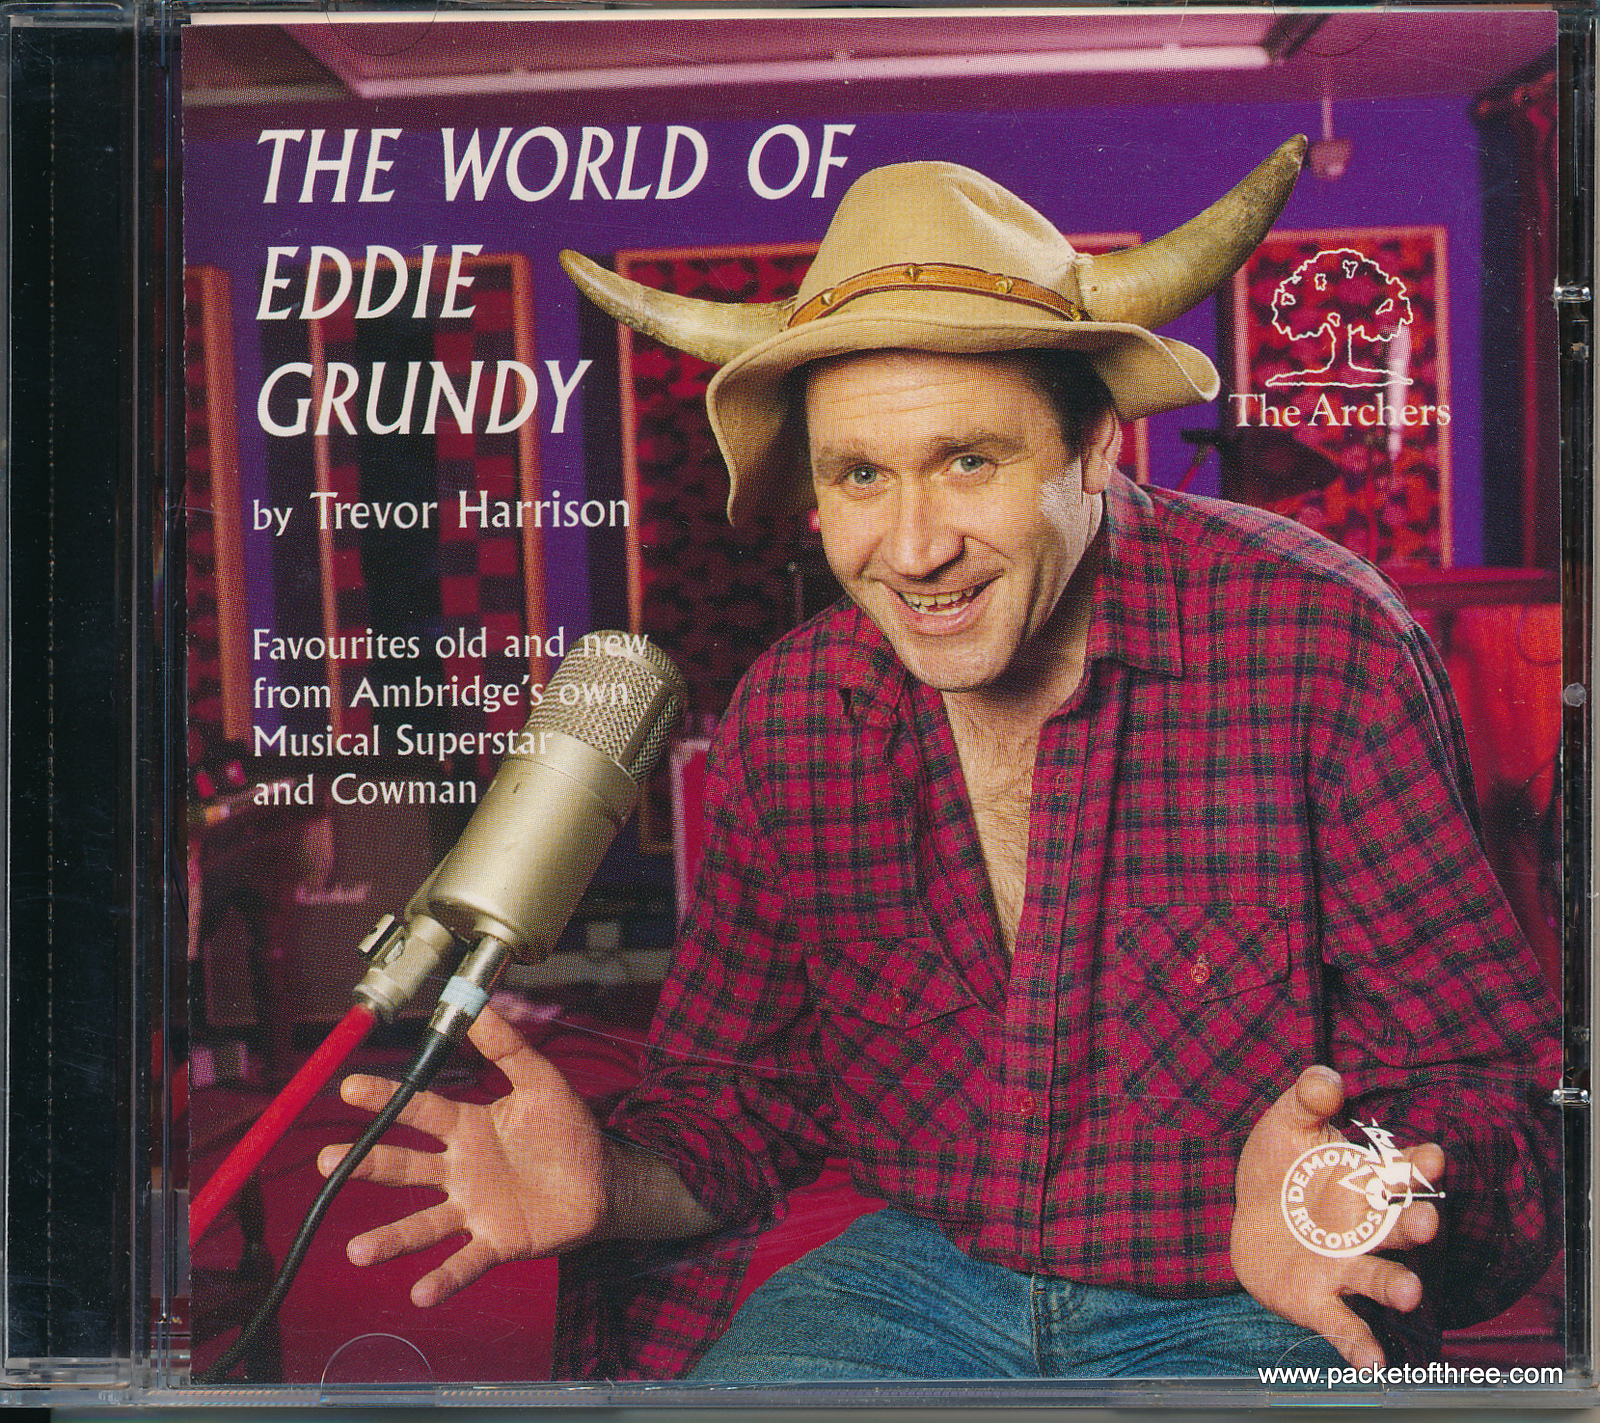 The World of Eddie Grundy